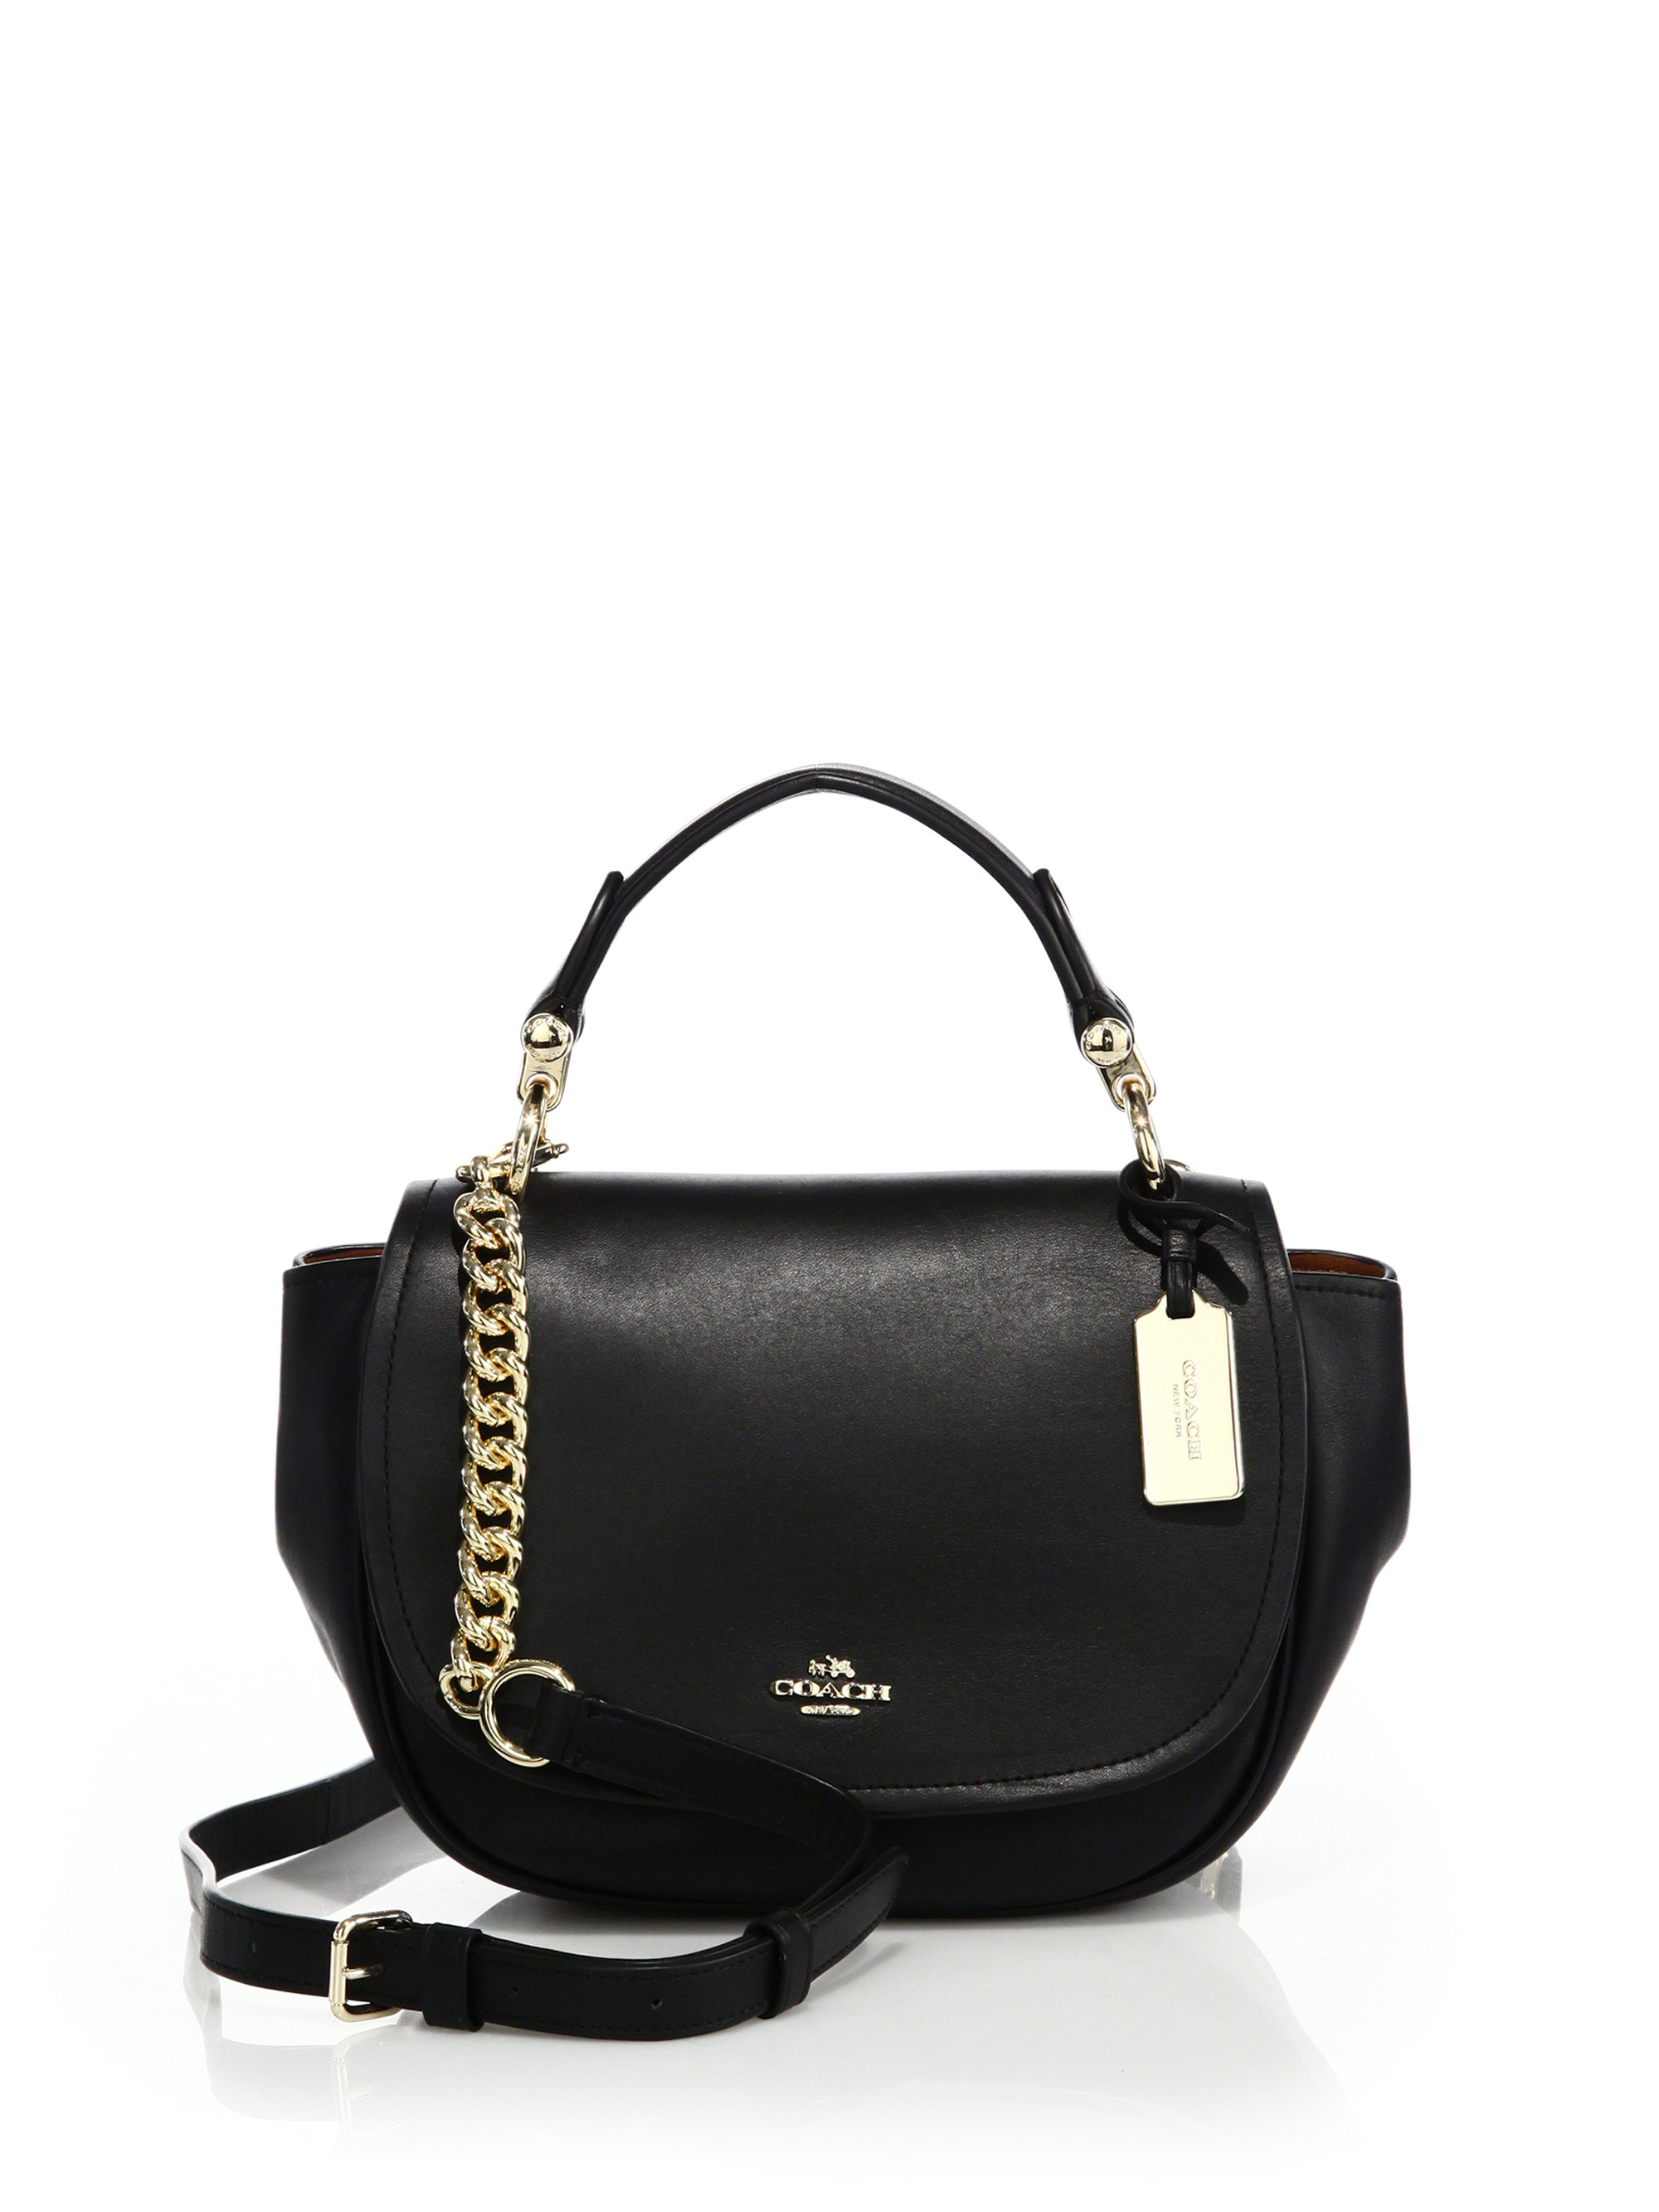 Coach Nomad Leather Crossbody Bag in Black | Lyst